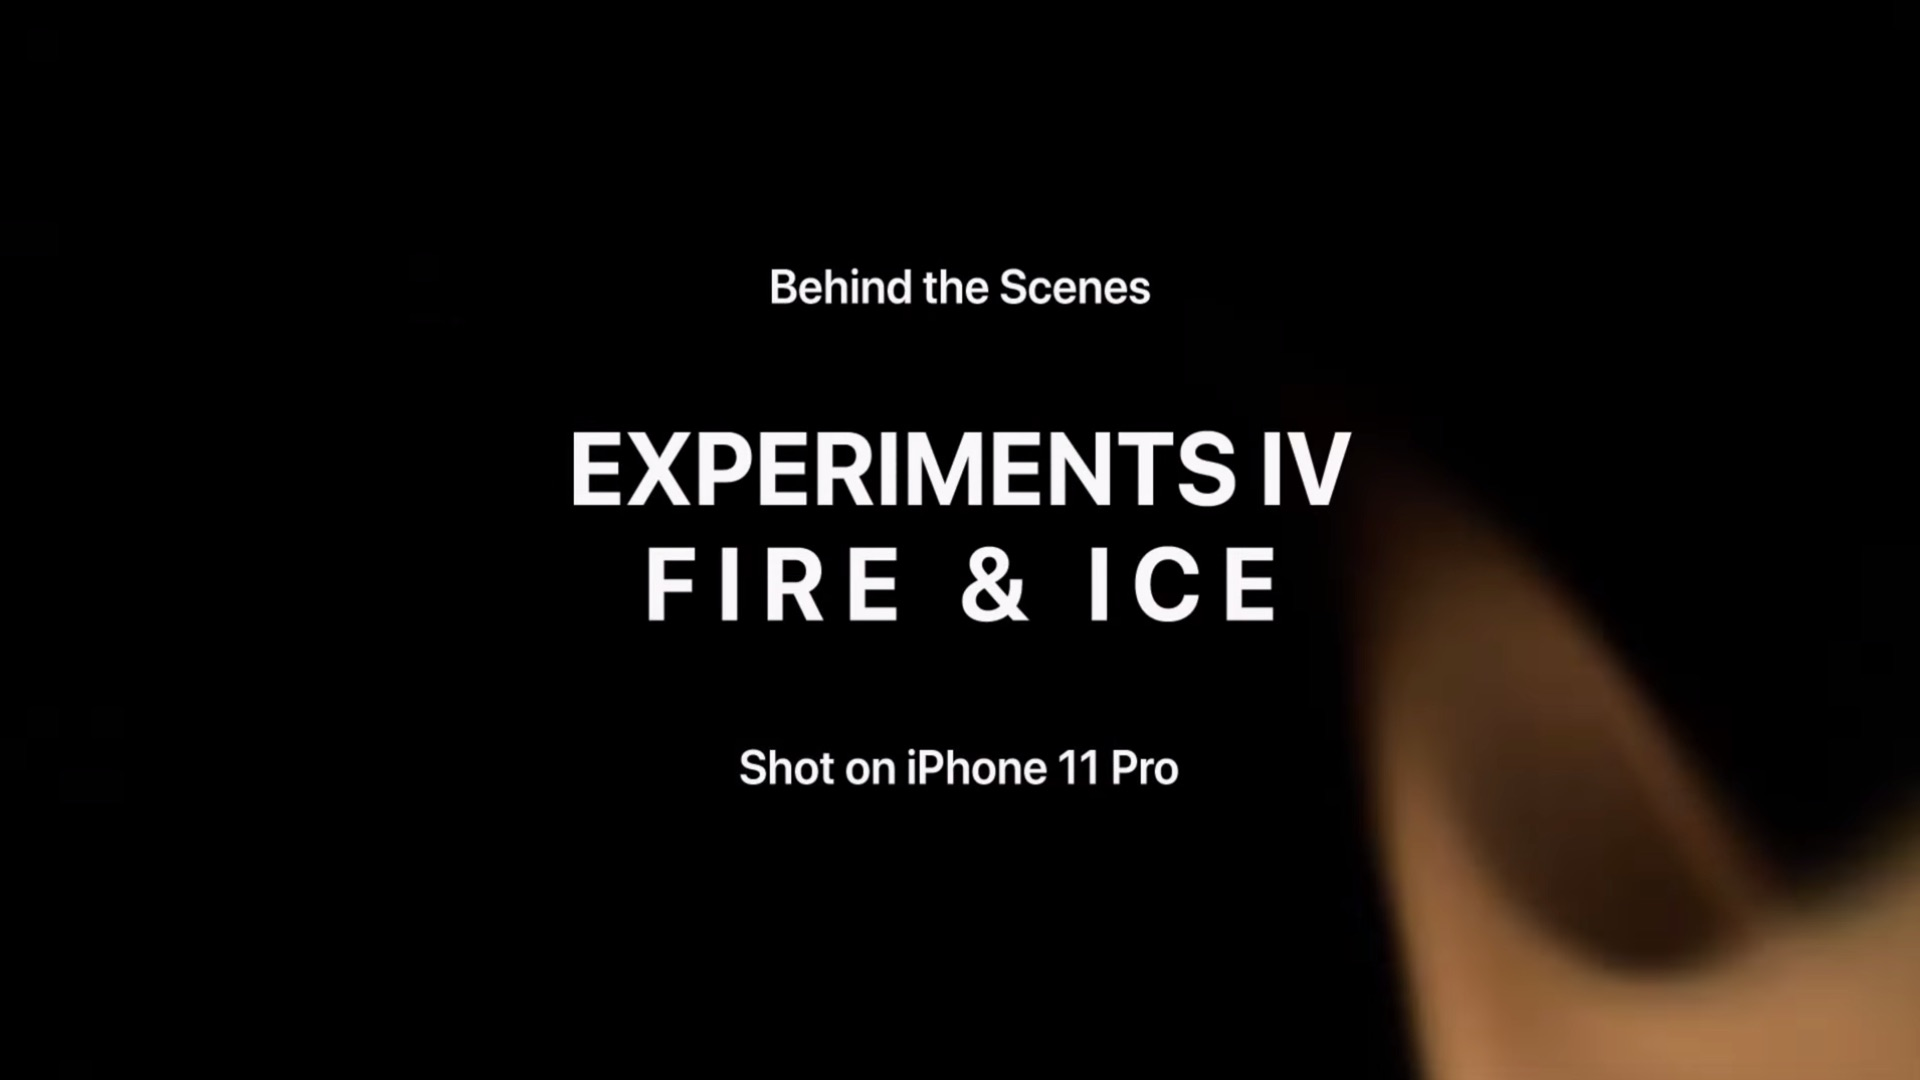 Apple Iphone 11 Proで撮影した Experiments Iv Fire Ice を公開